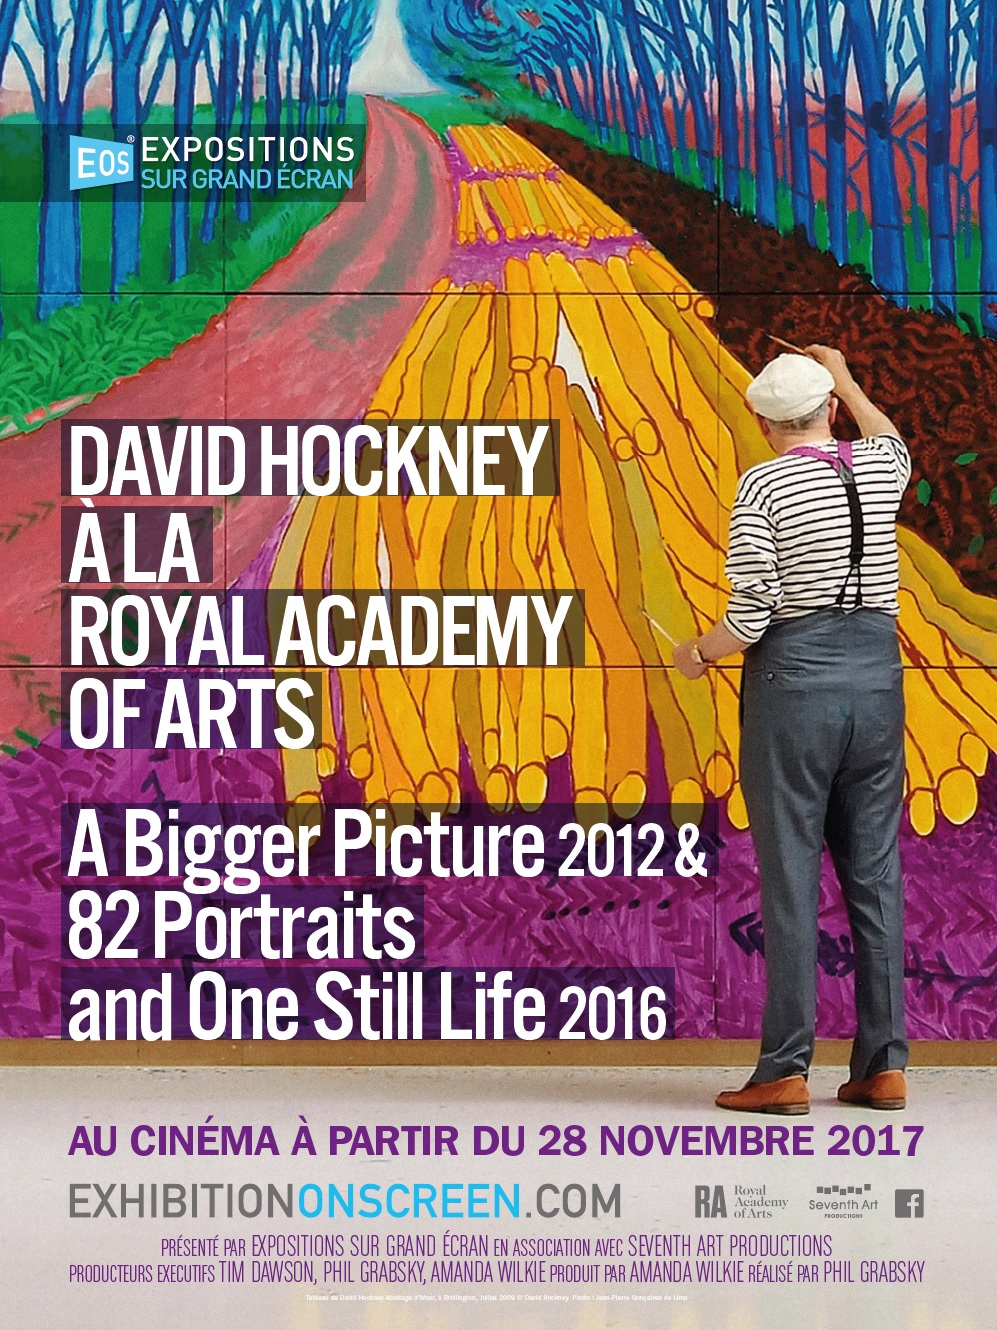 David Hockney à la Royal Academy of Arts : A Bigger Picture 2012 & 82 Portraits and One Still Life 2016